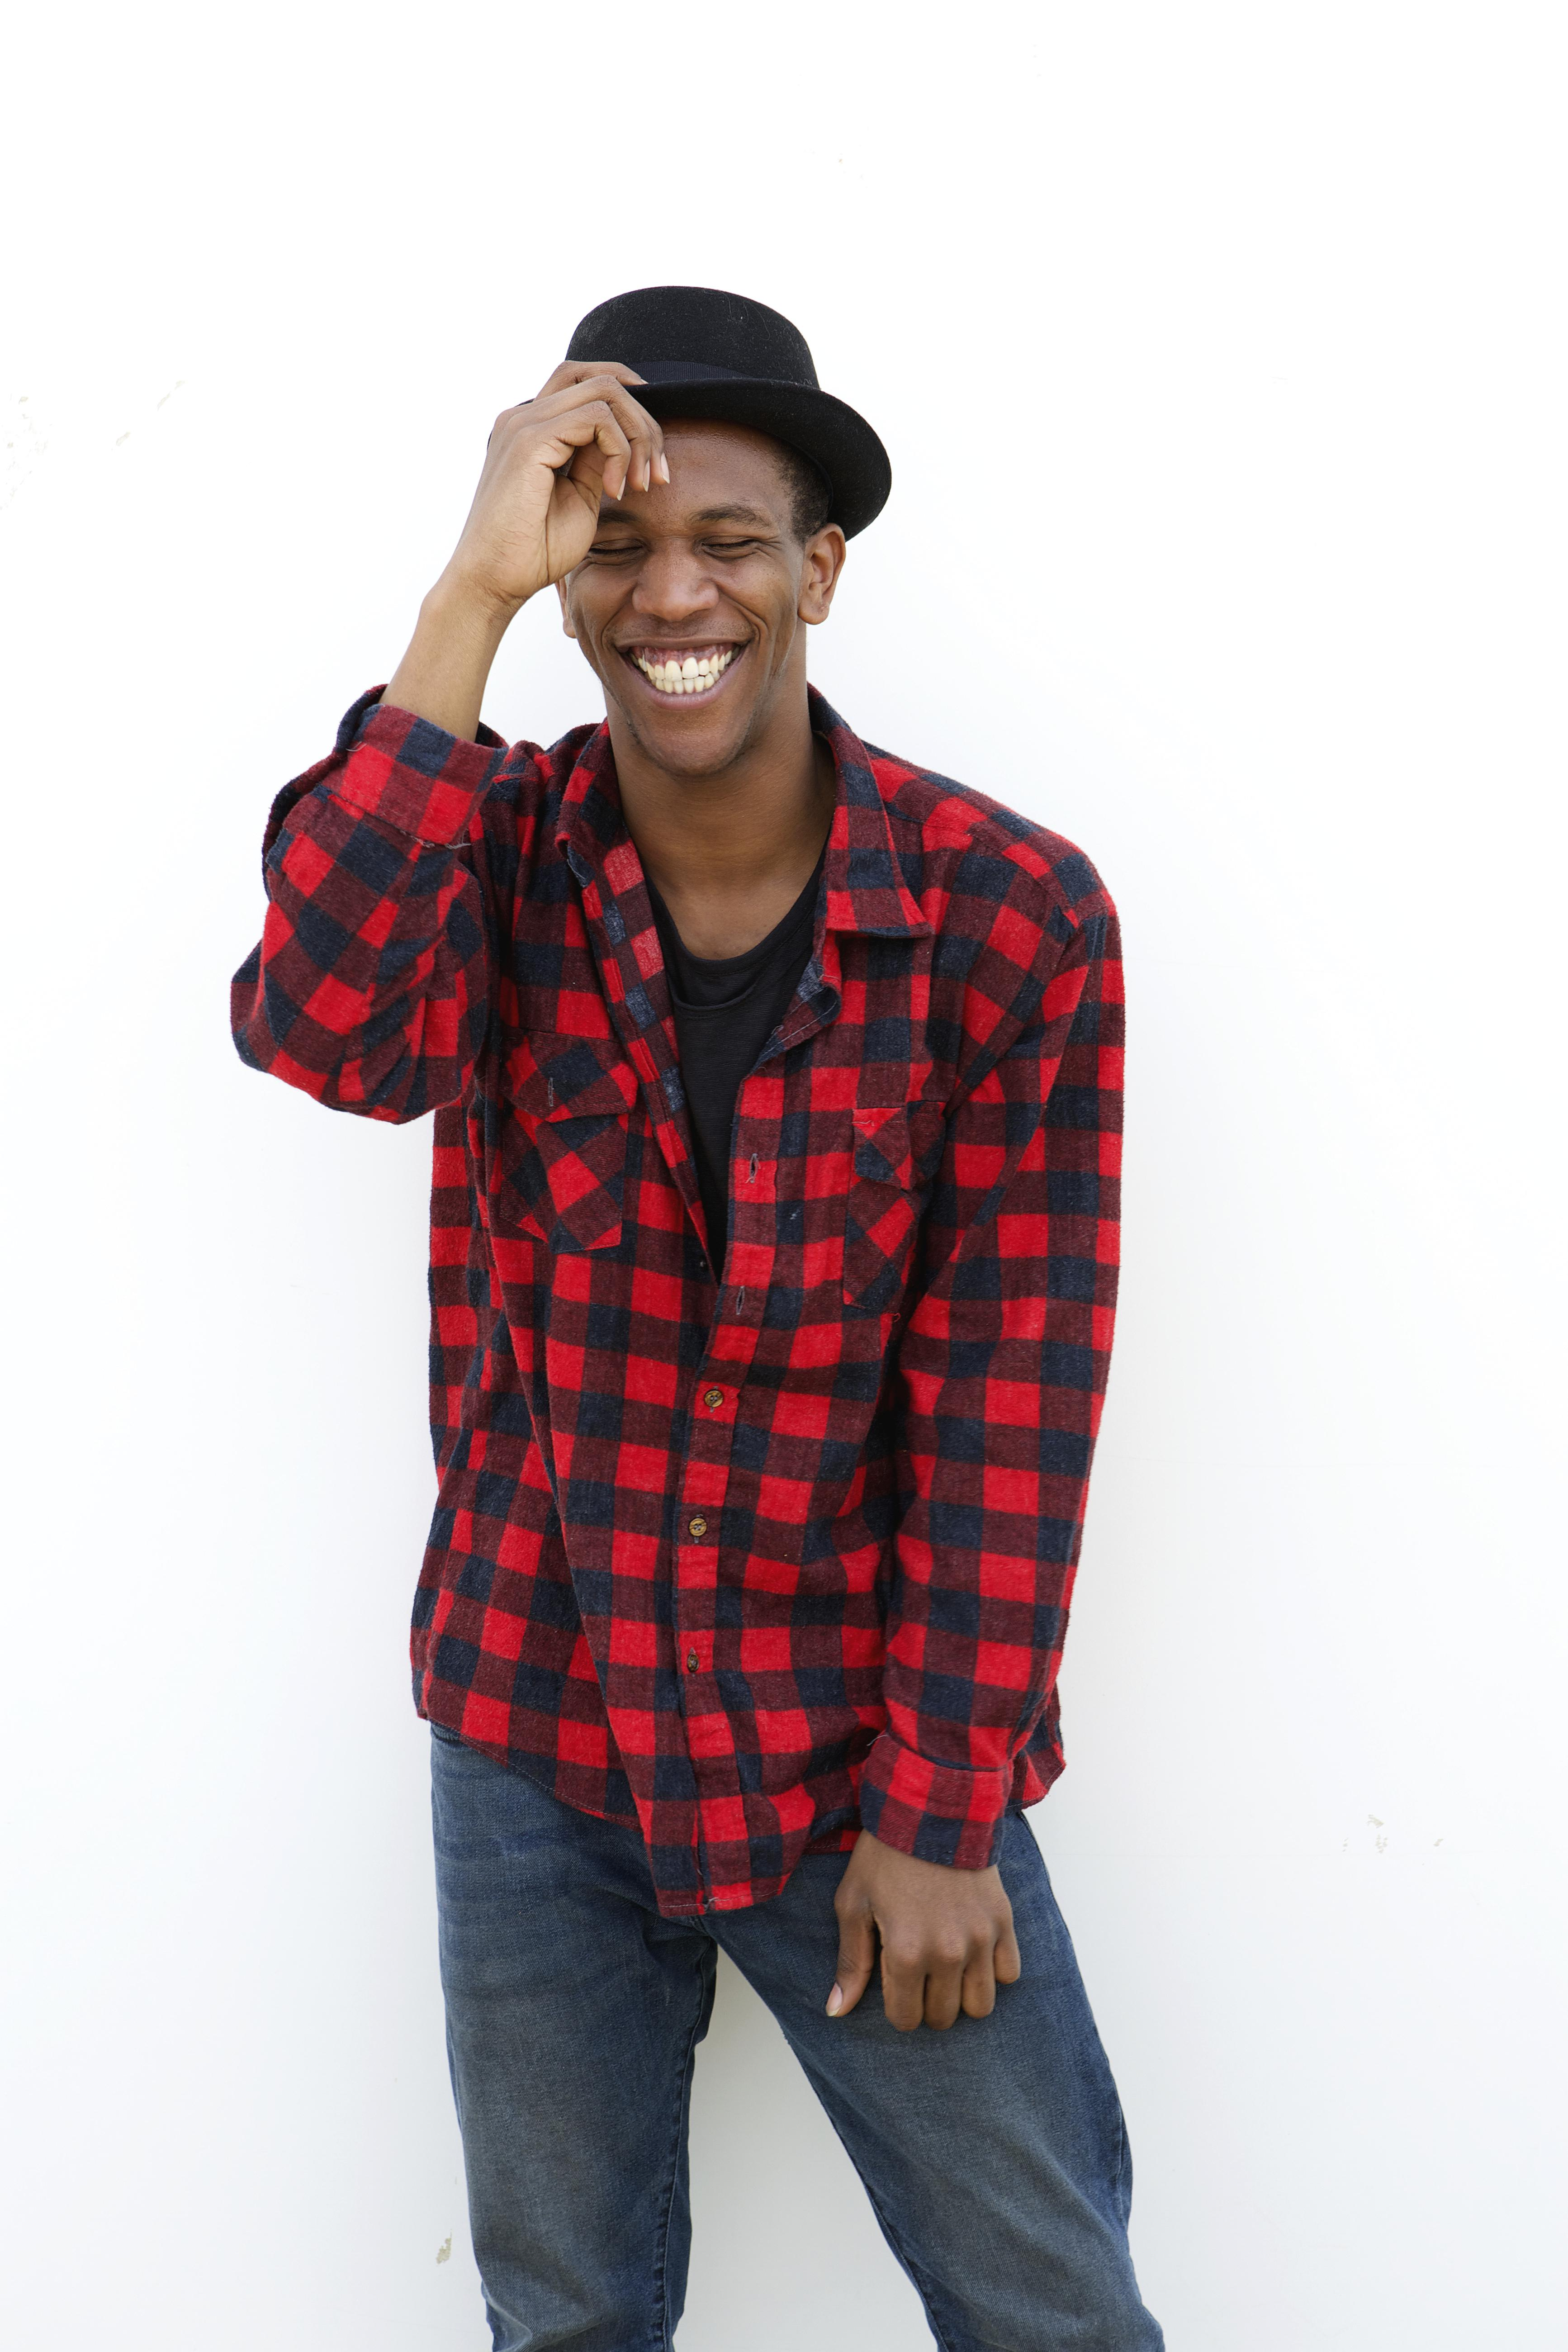 Portrait of a trendy young man laughing outdoors on white background